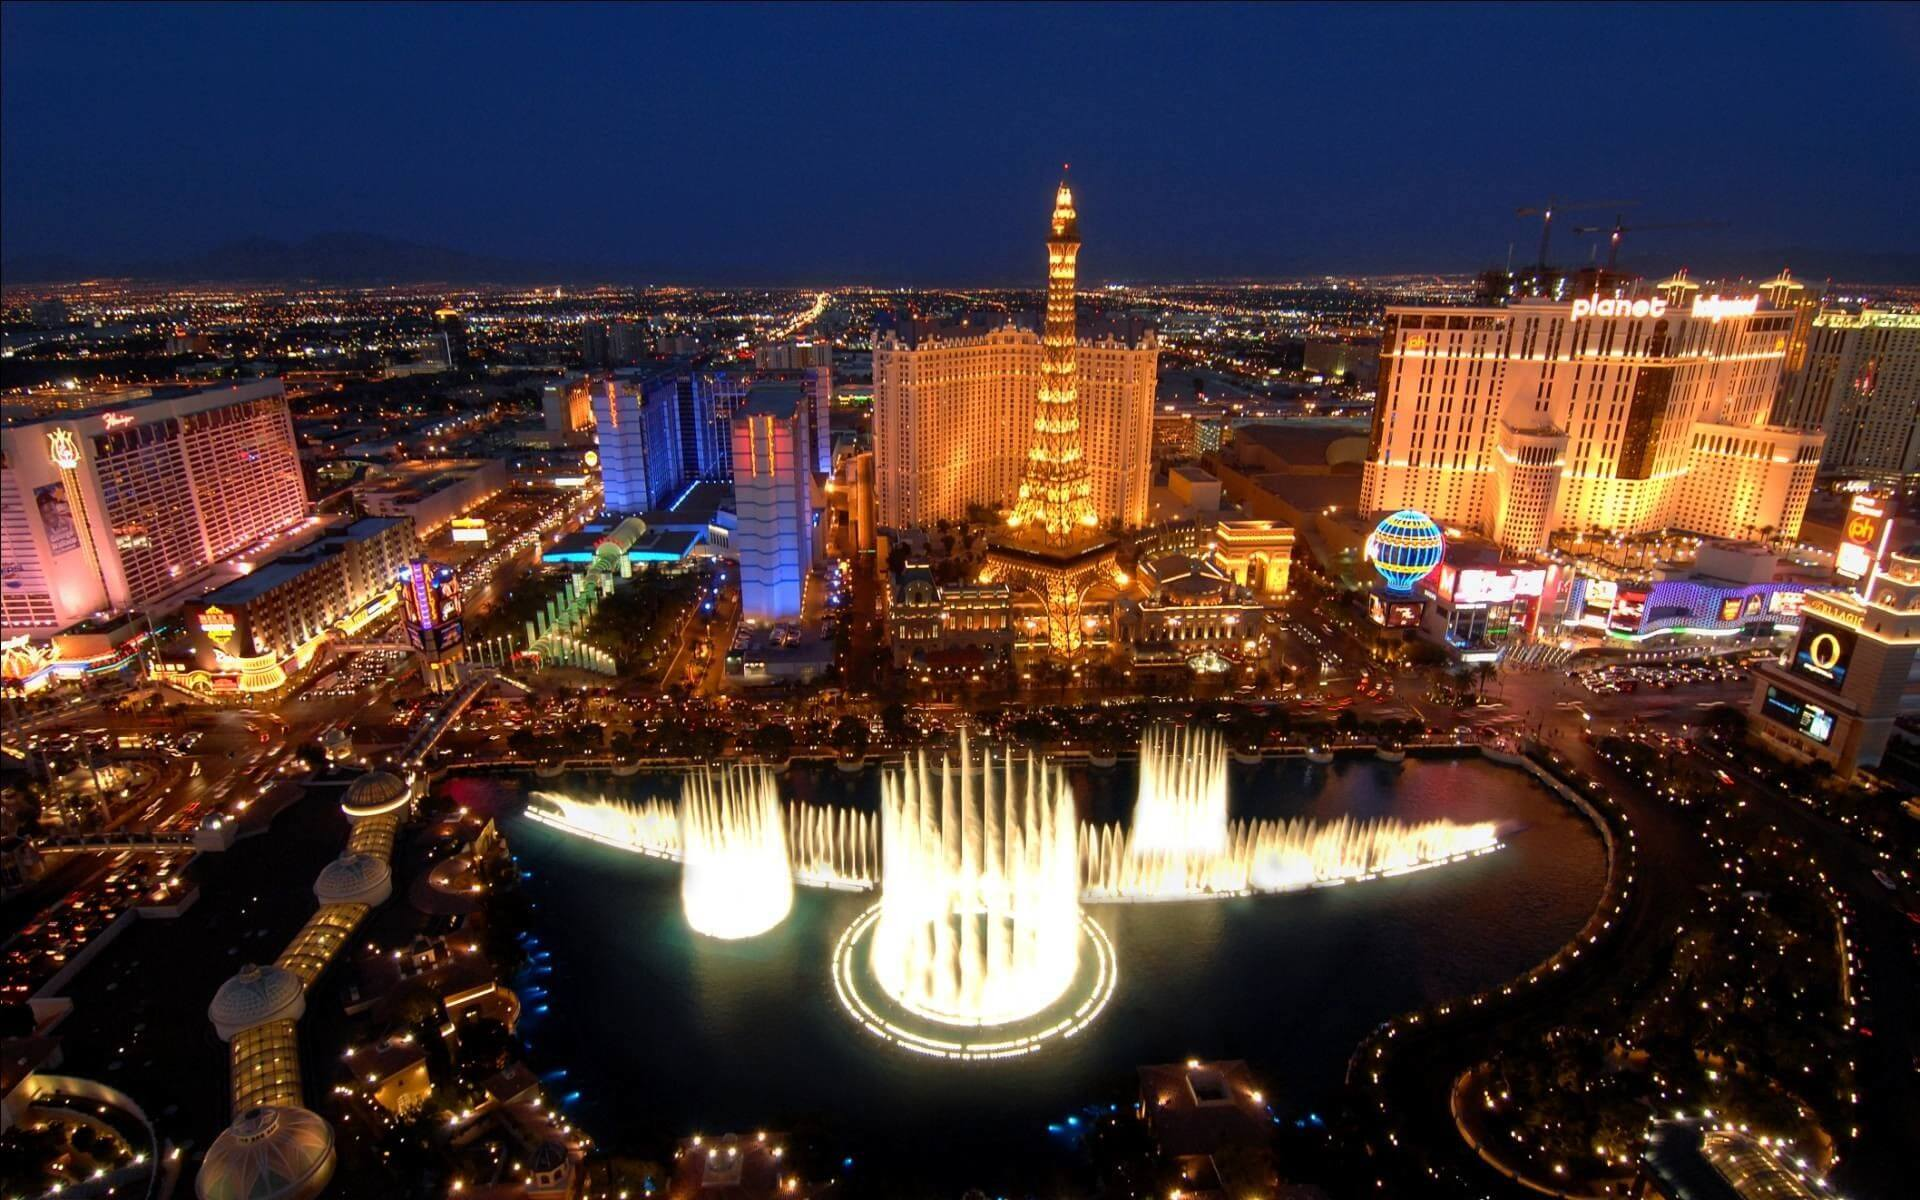 10 AMAZING FACTS ABOUT LAS VEGAS THAT NO ONE TALKS ABOUT